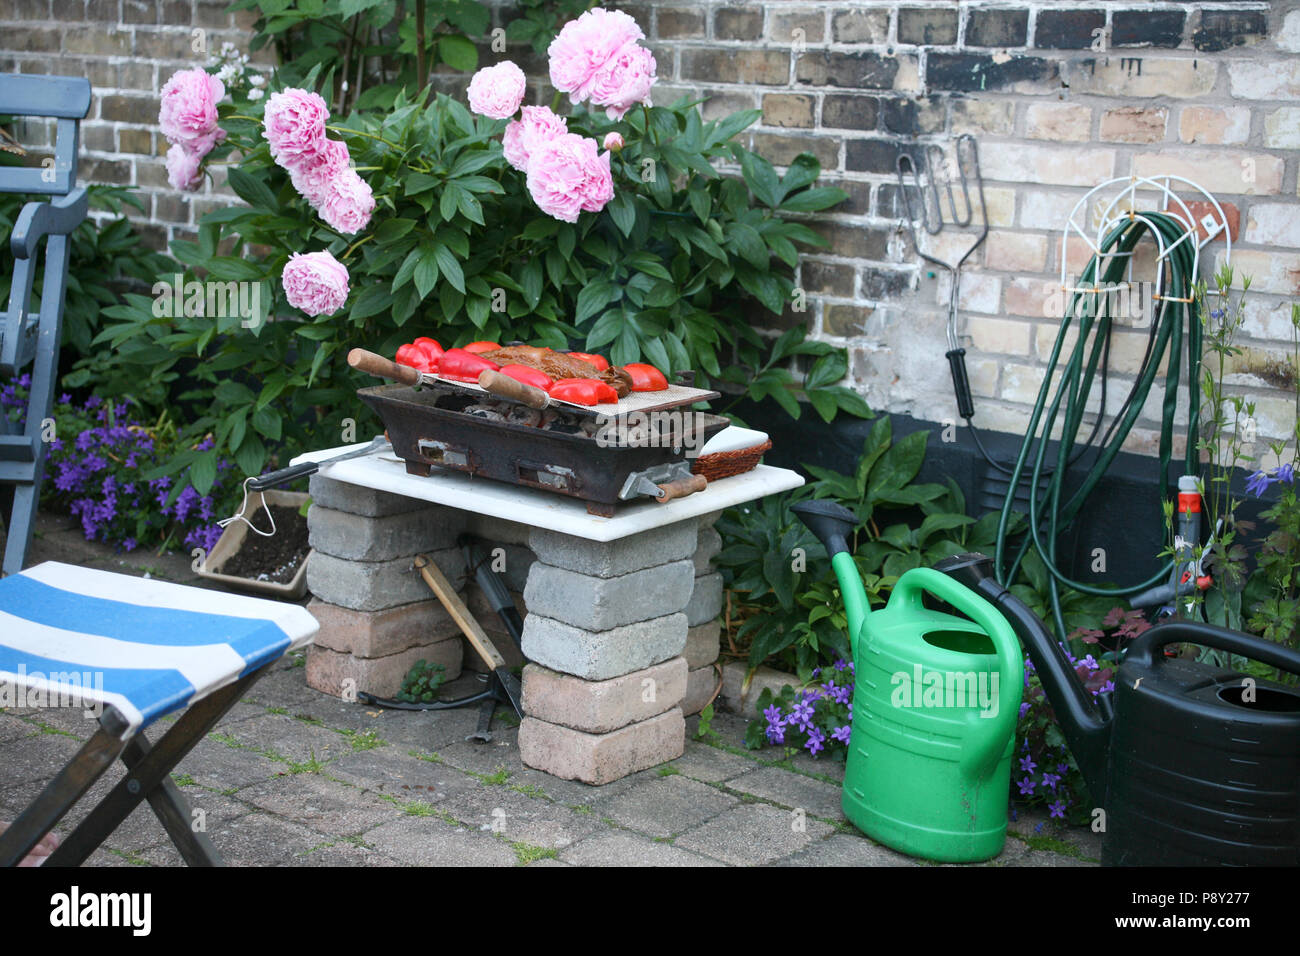 GRILLING out on the backyard  2012 - Stock Image